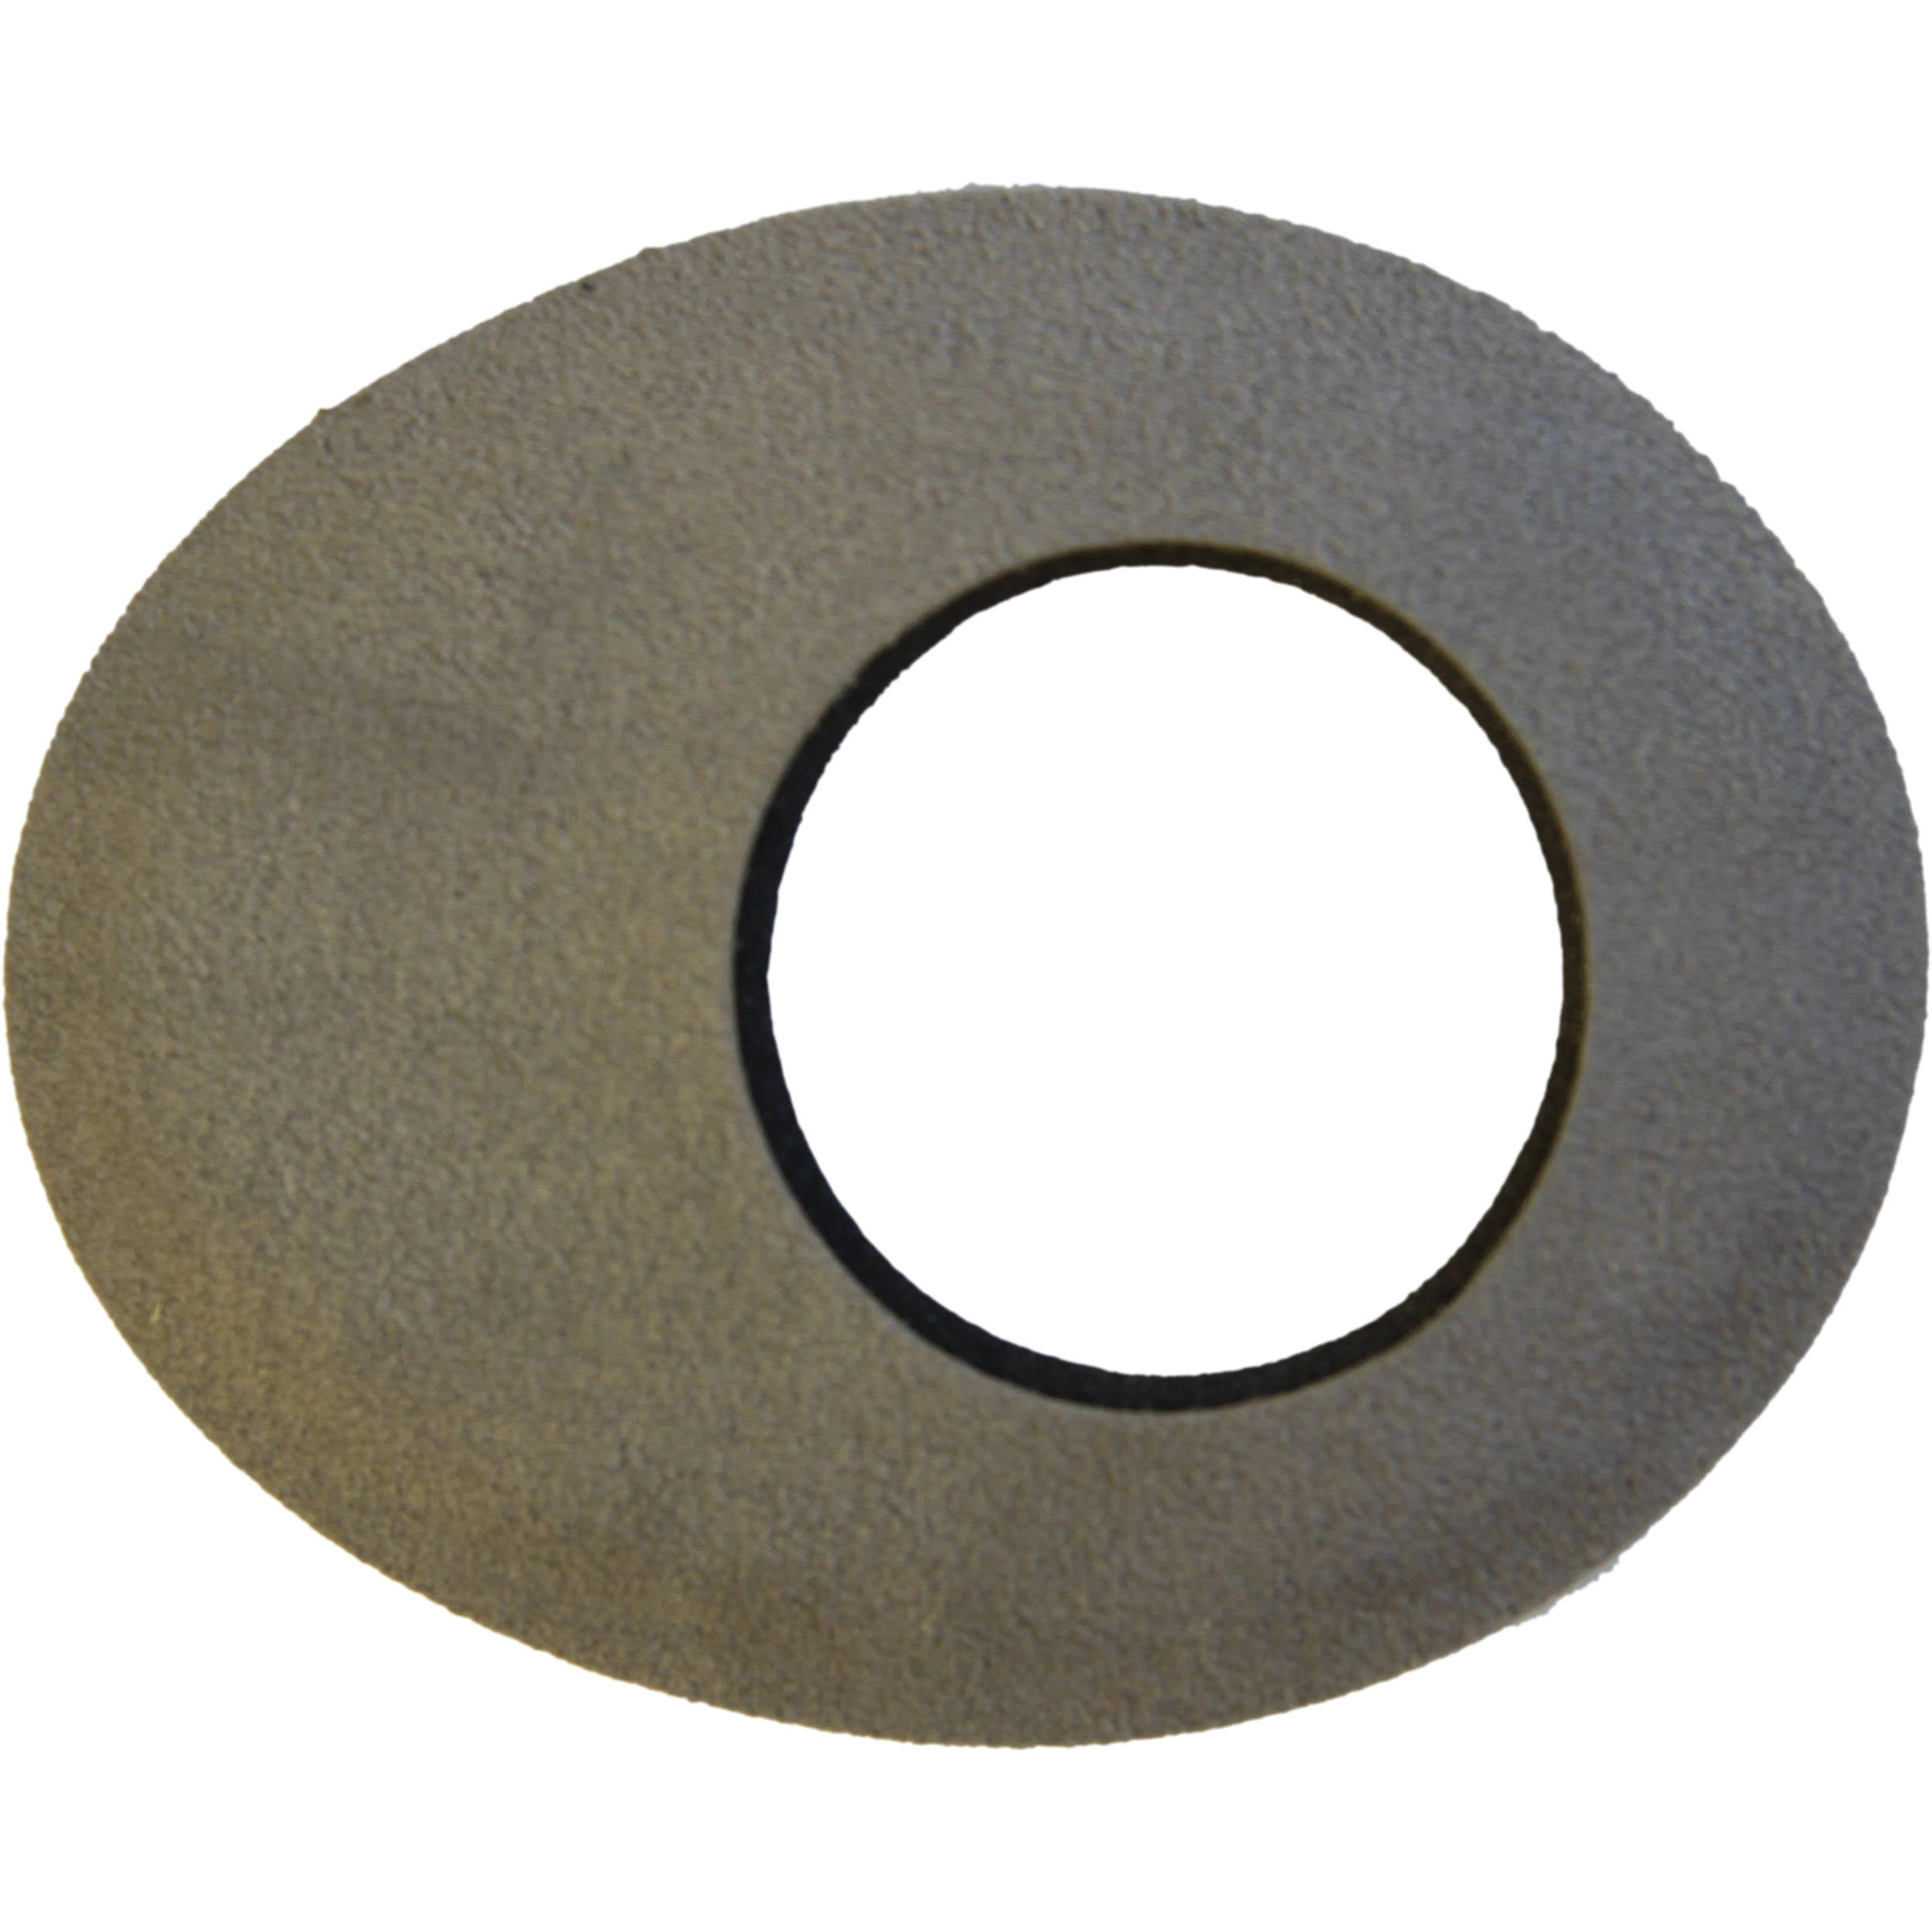 Bluestar Oval Small Microfiber Eyecushion (Gray)